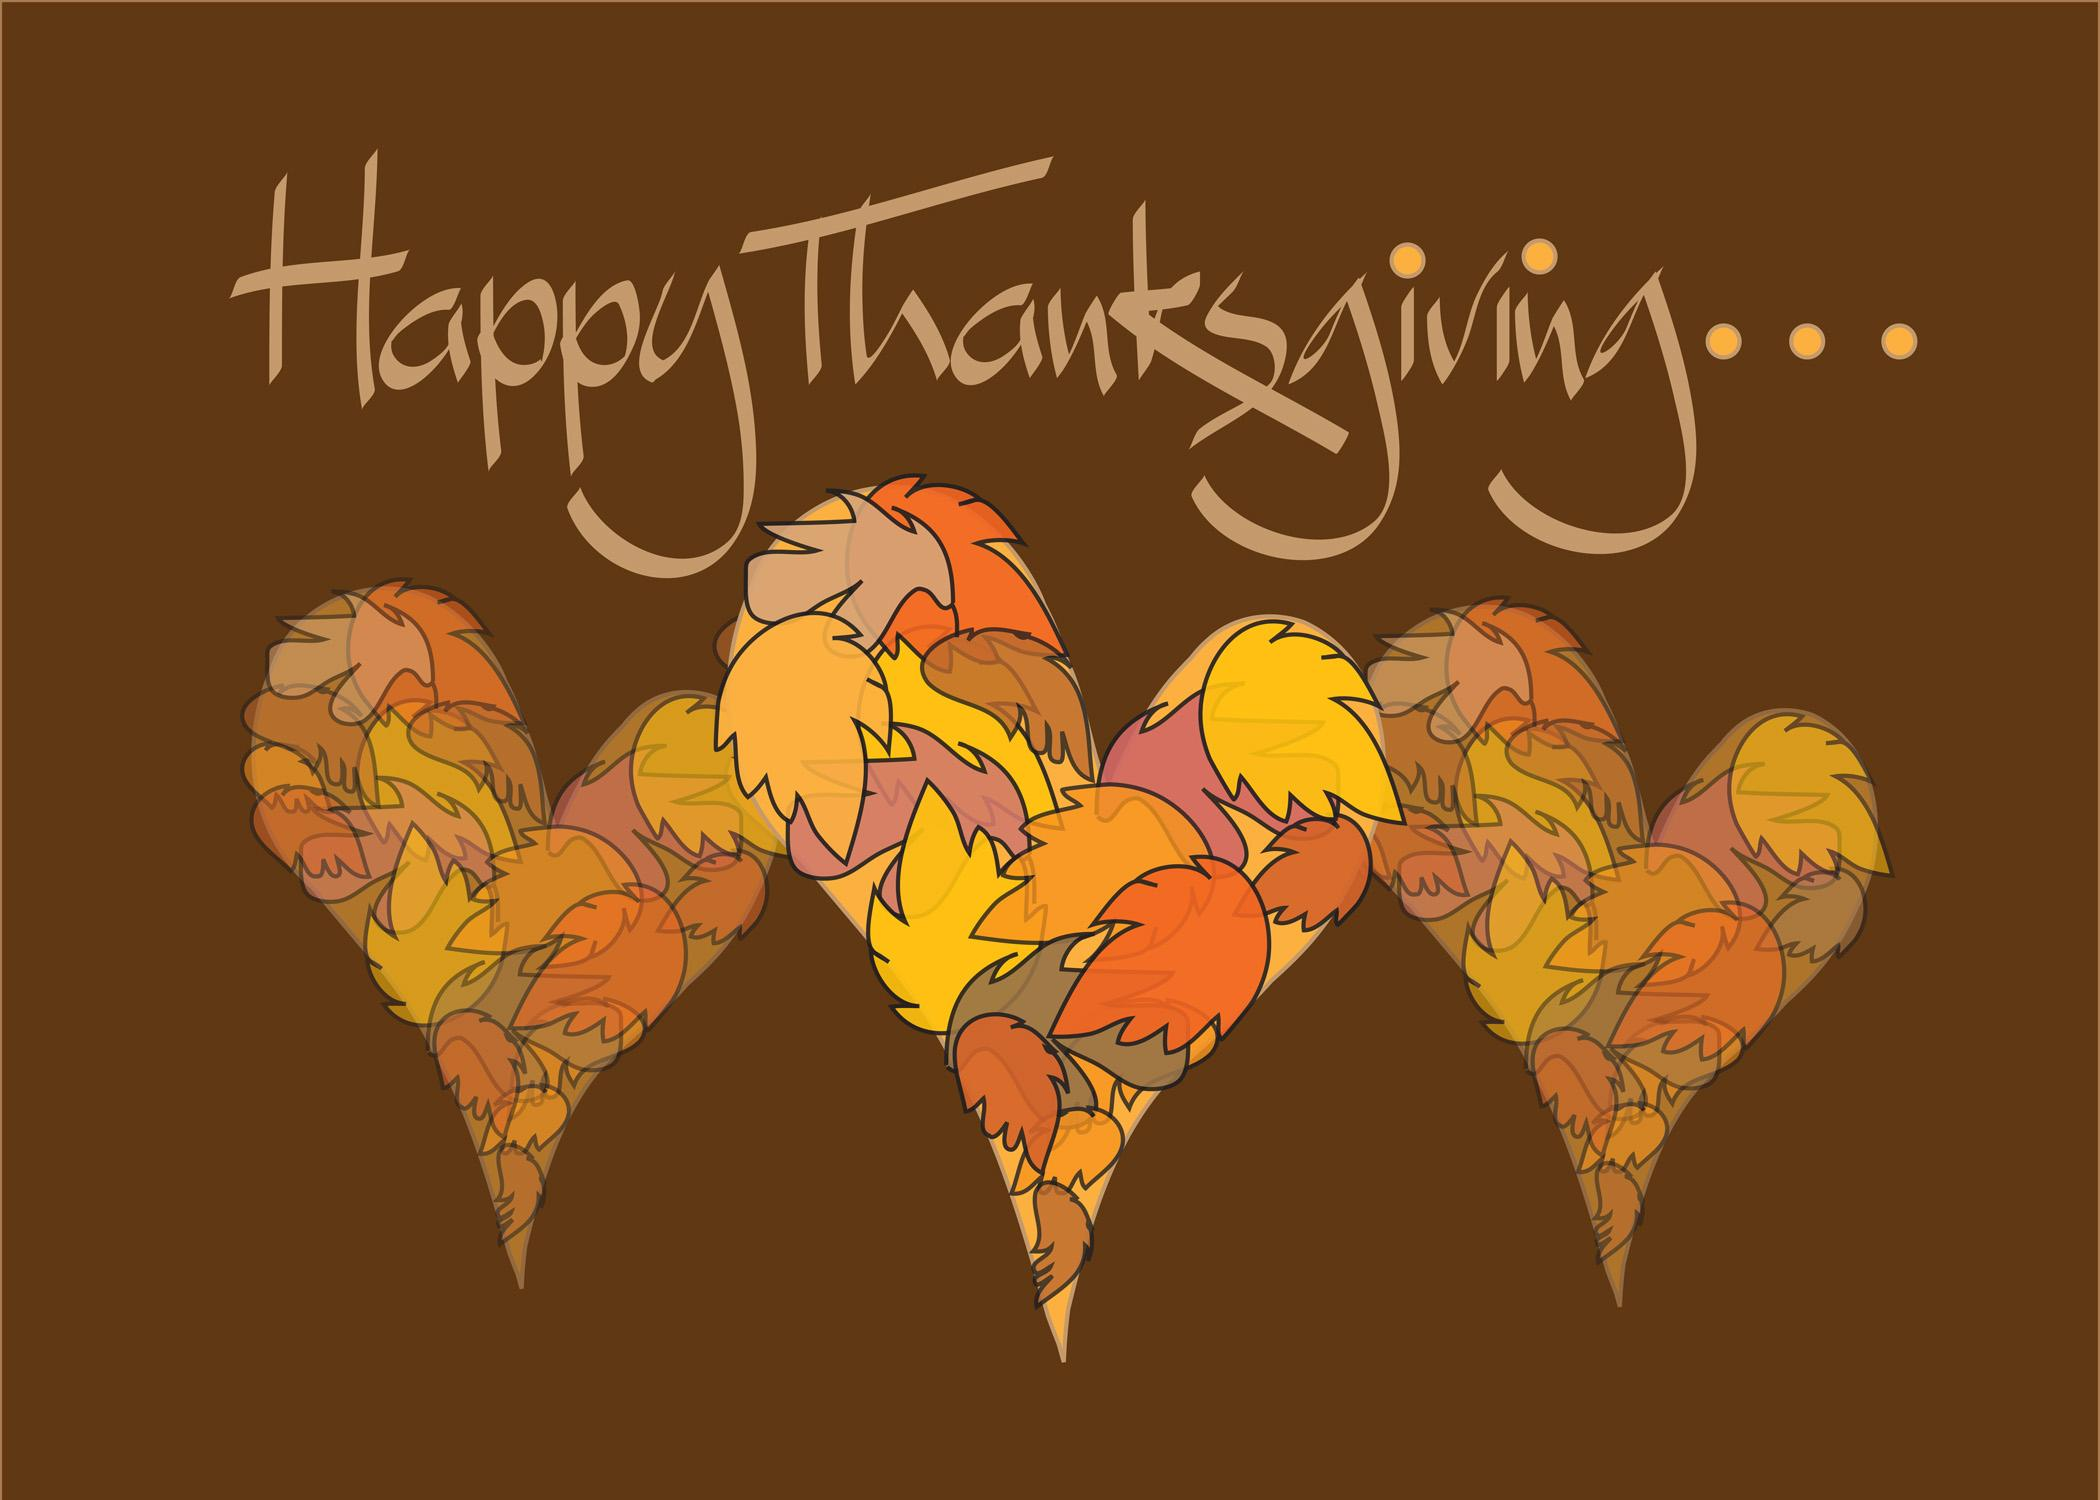 Happy Thanksgiving Pictures to Download for Free [2020]